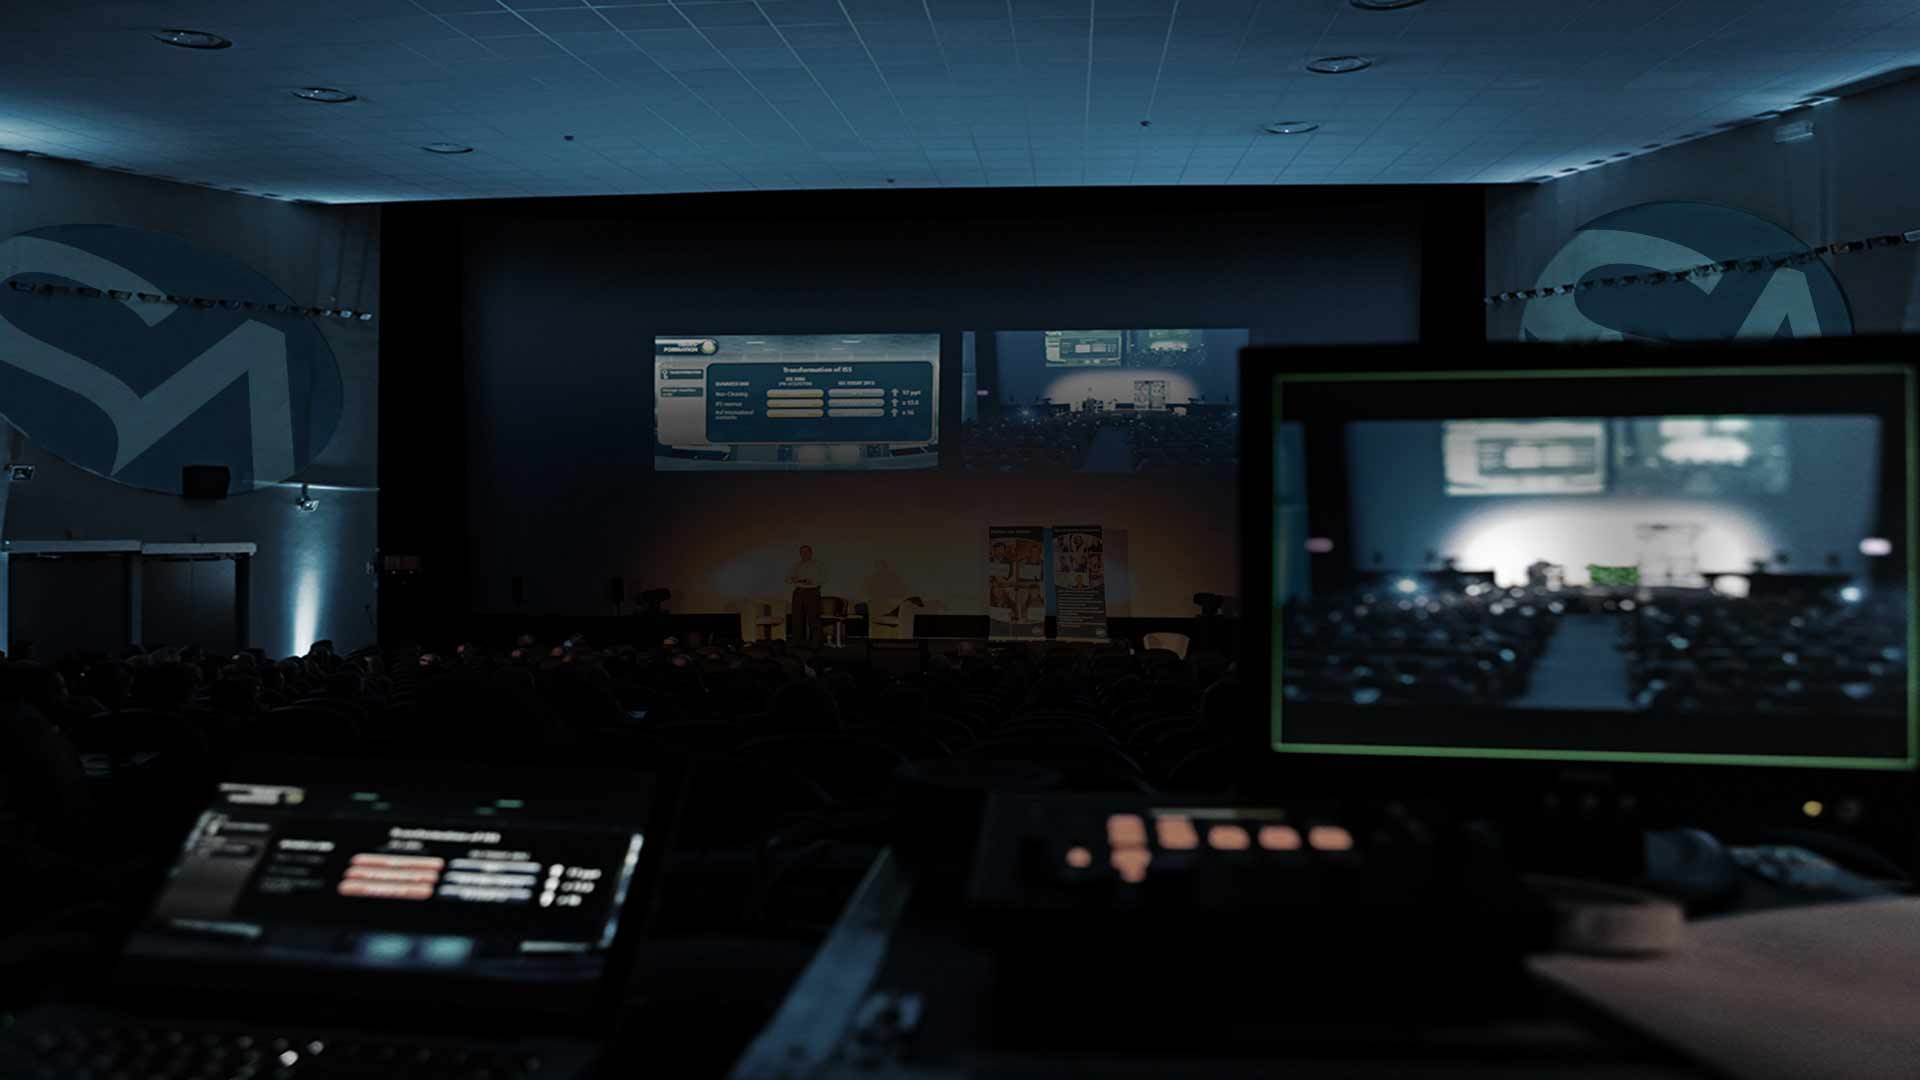 Sagess Audio - Production évènementielle